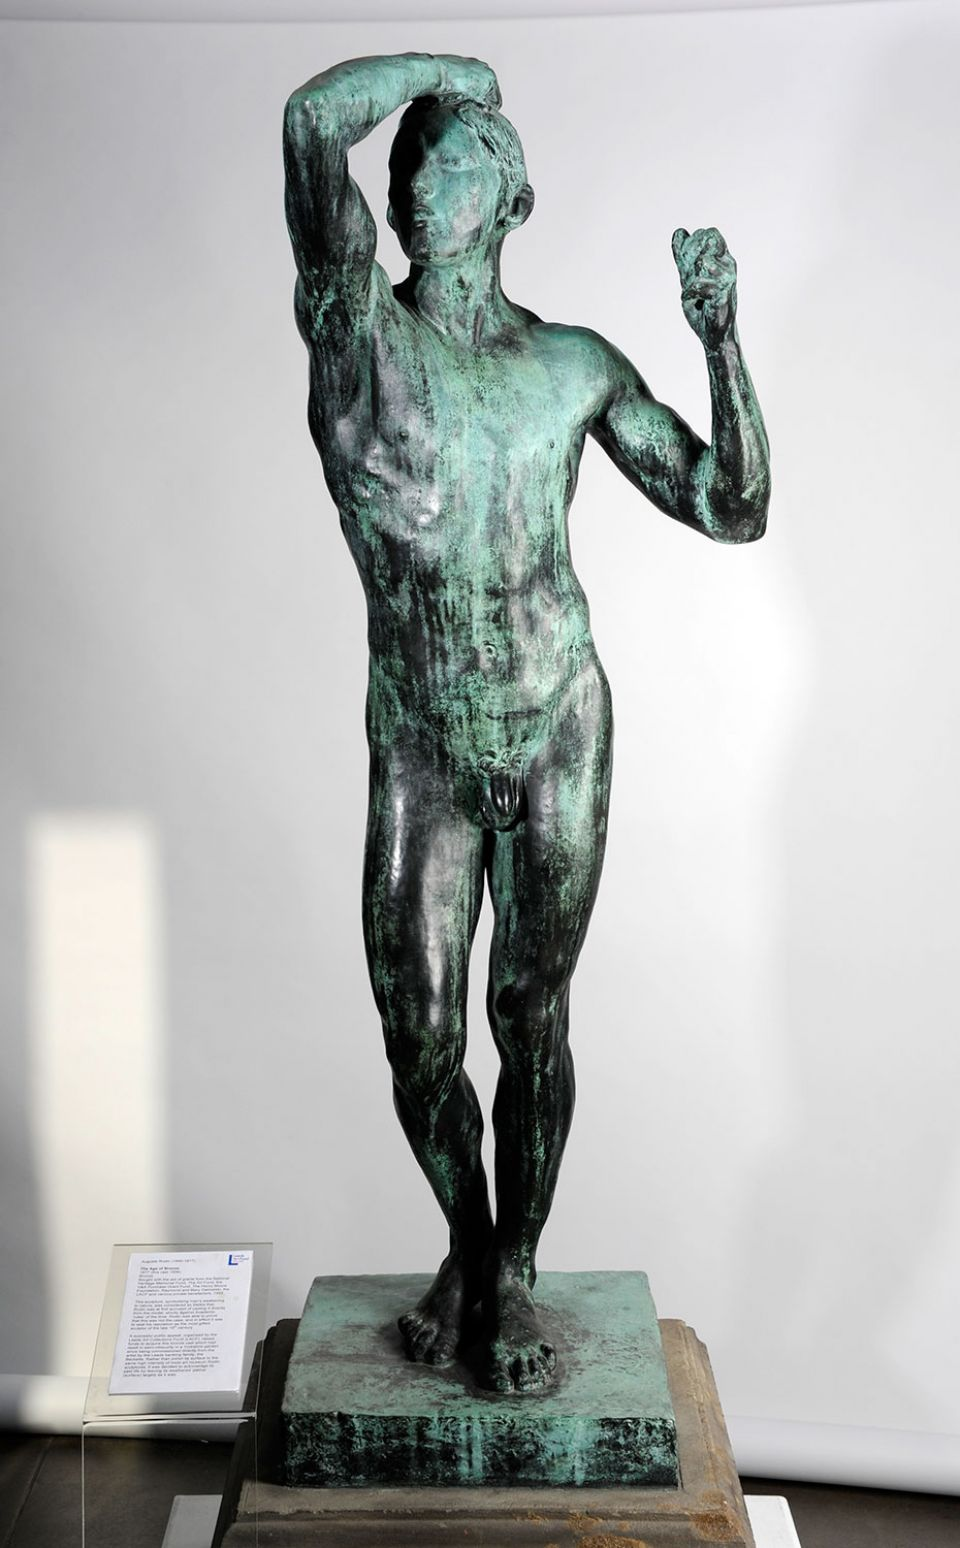 August Rodin, 'Age of Bronze' (1877 (cast 1906), bronze)